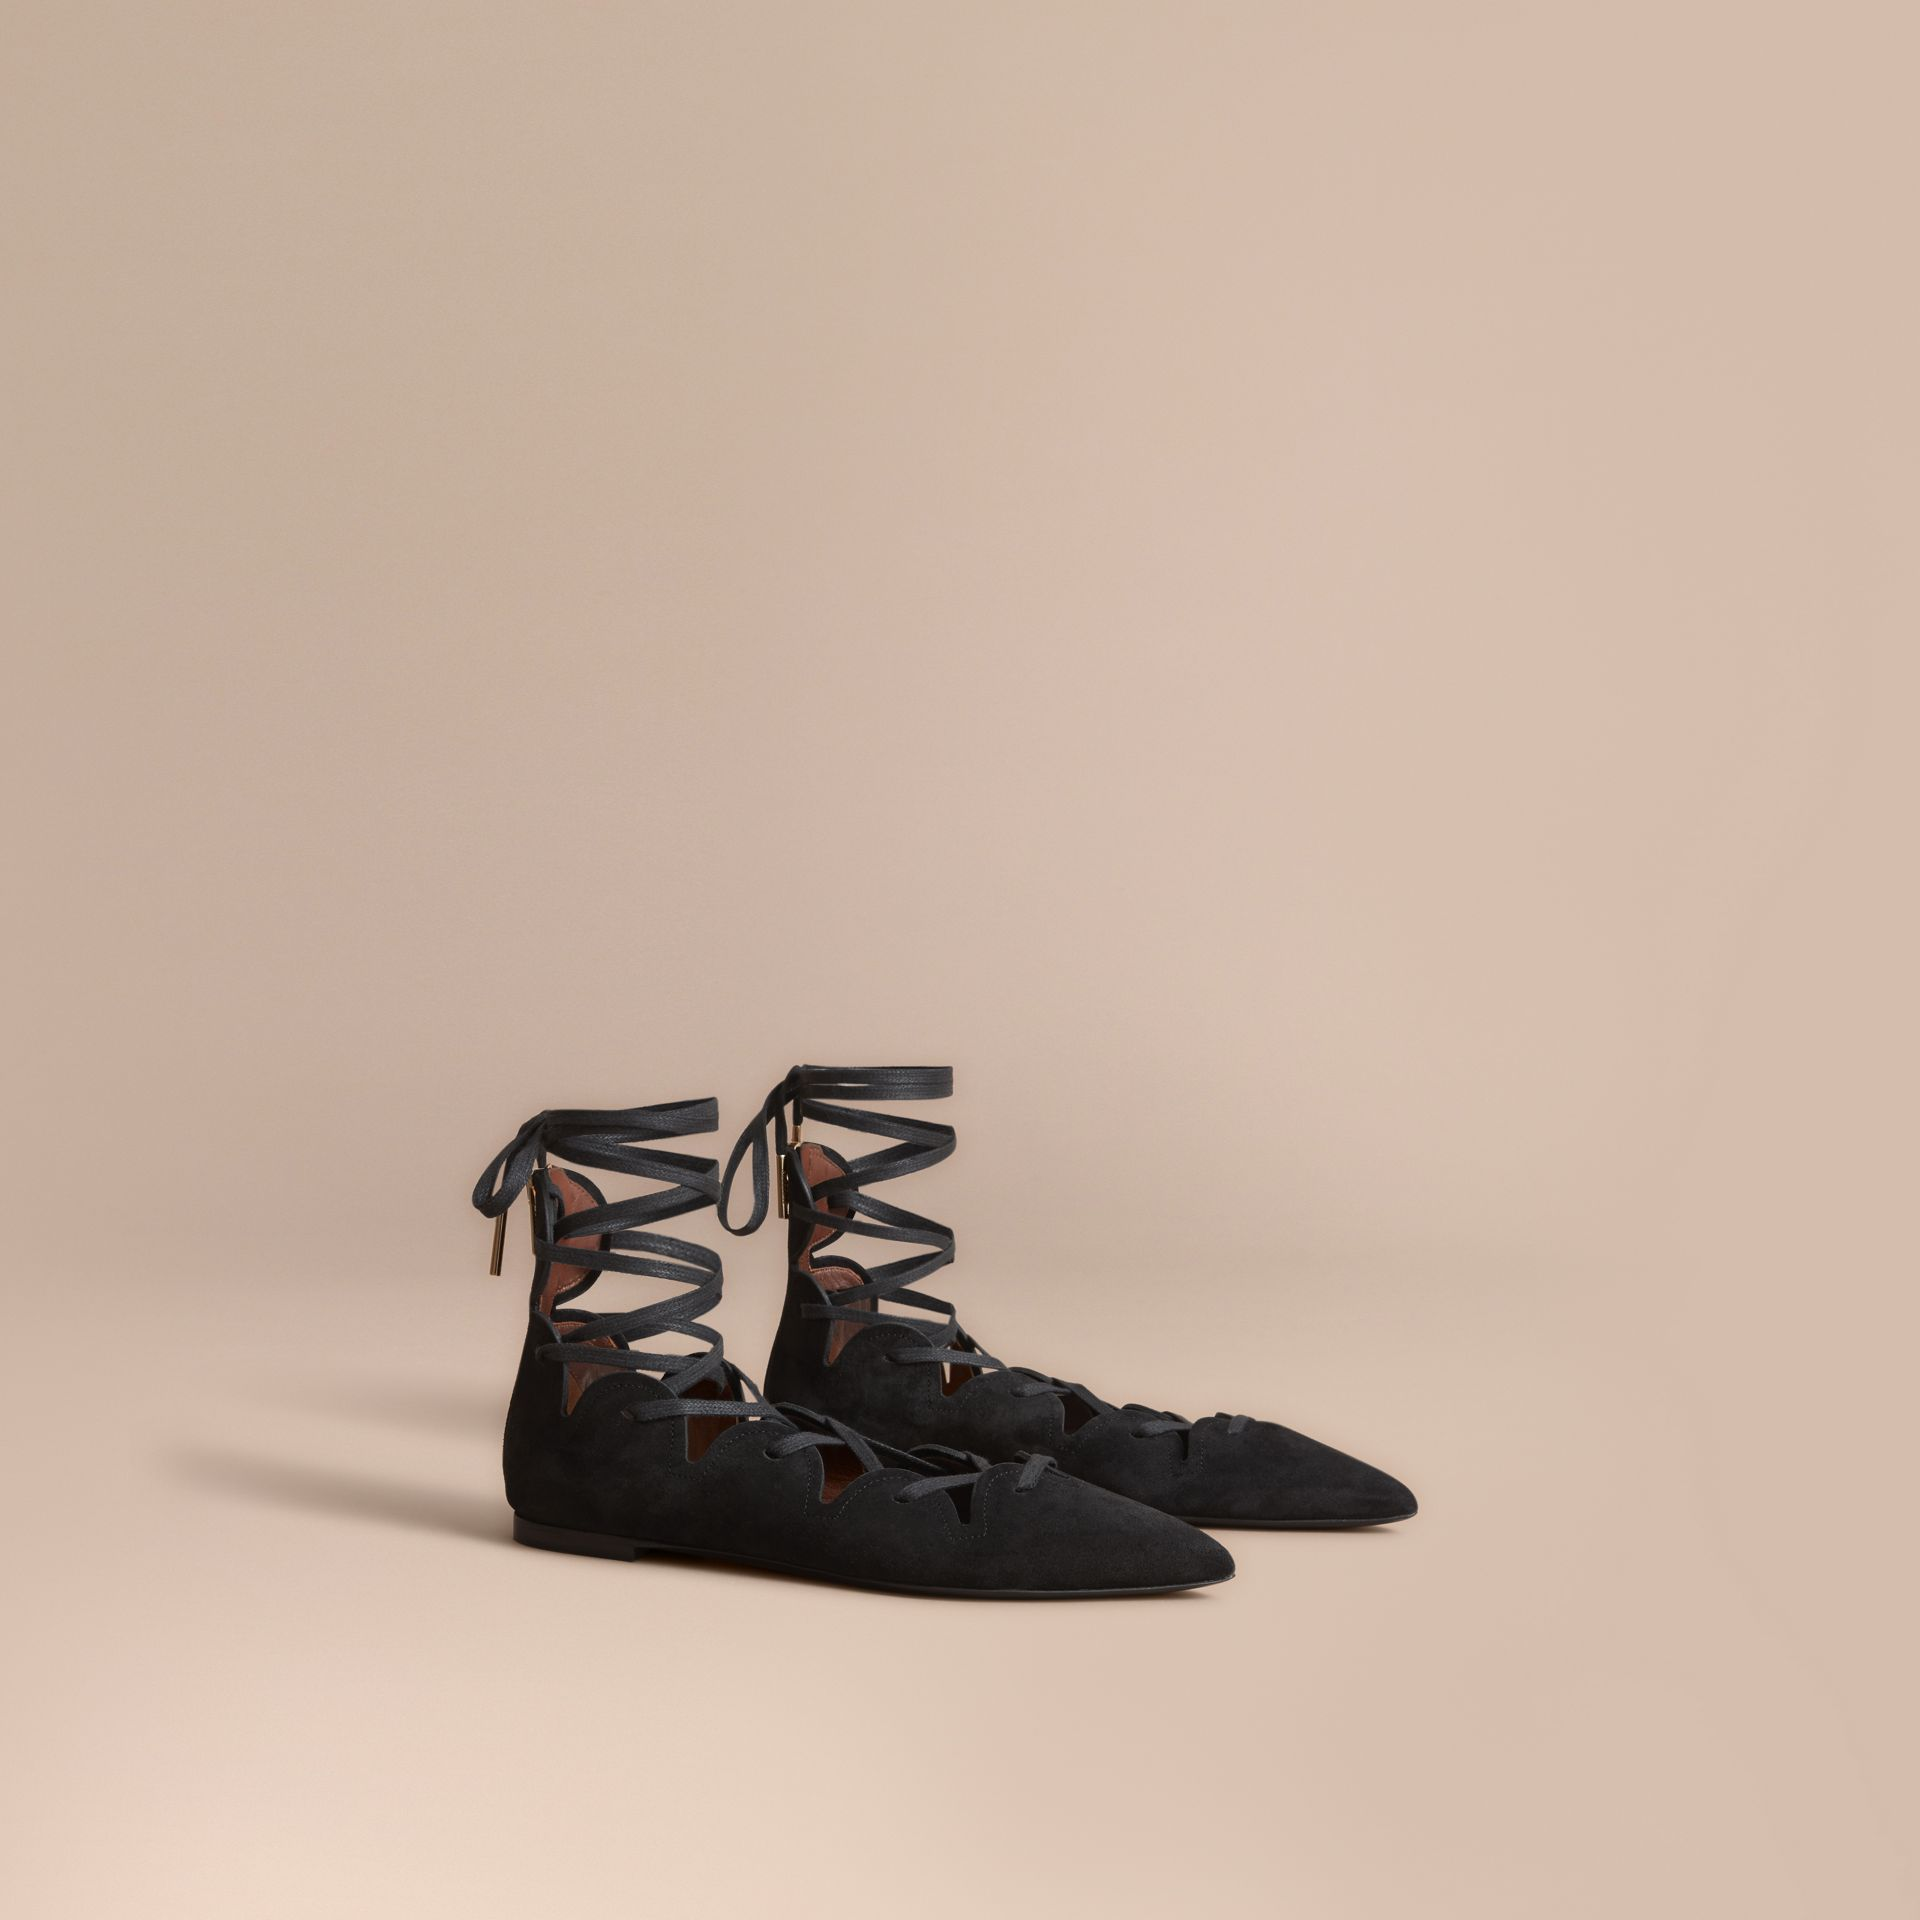 Scalloped Suede Lace-up Ballerinas in Black - Women | Burberry United States - gallery image 1